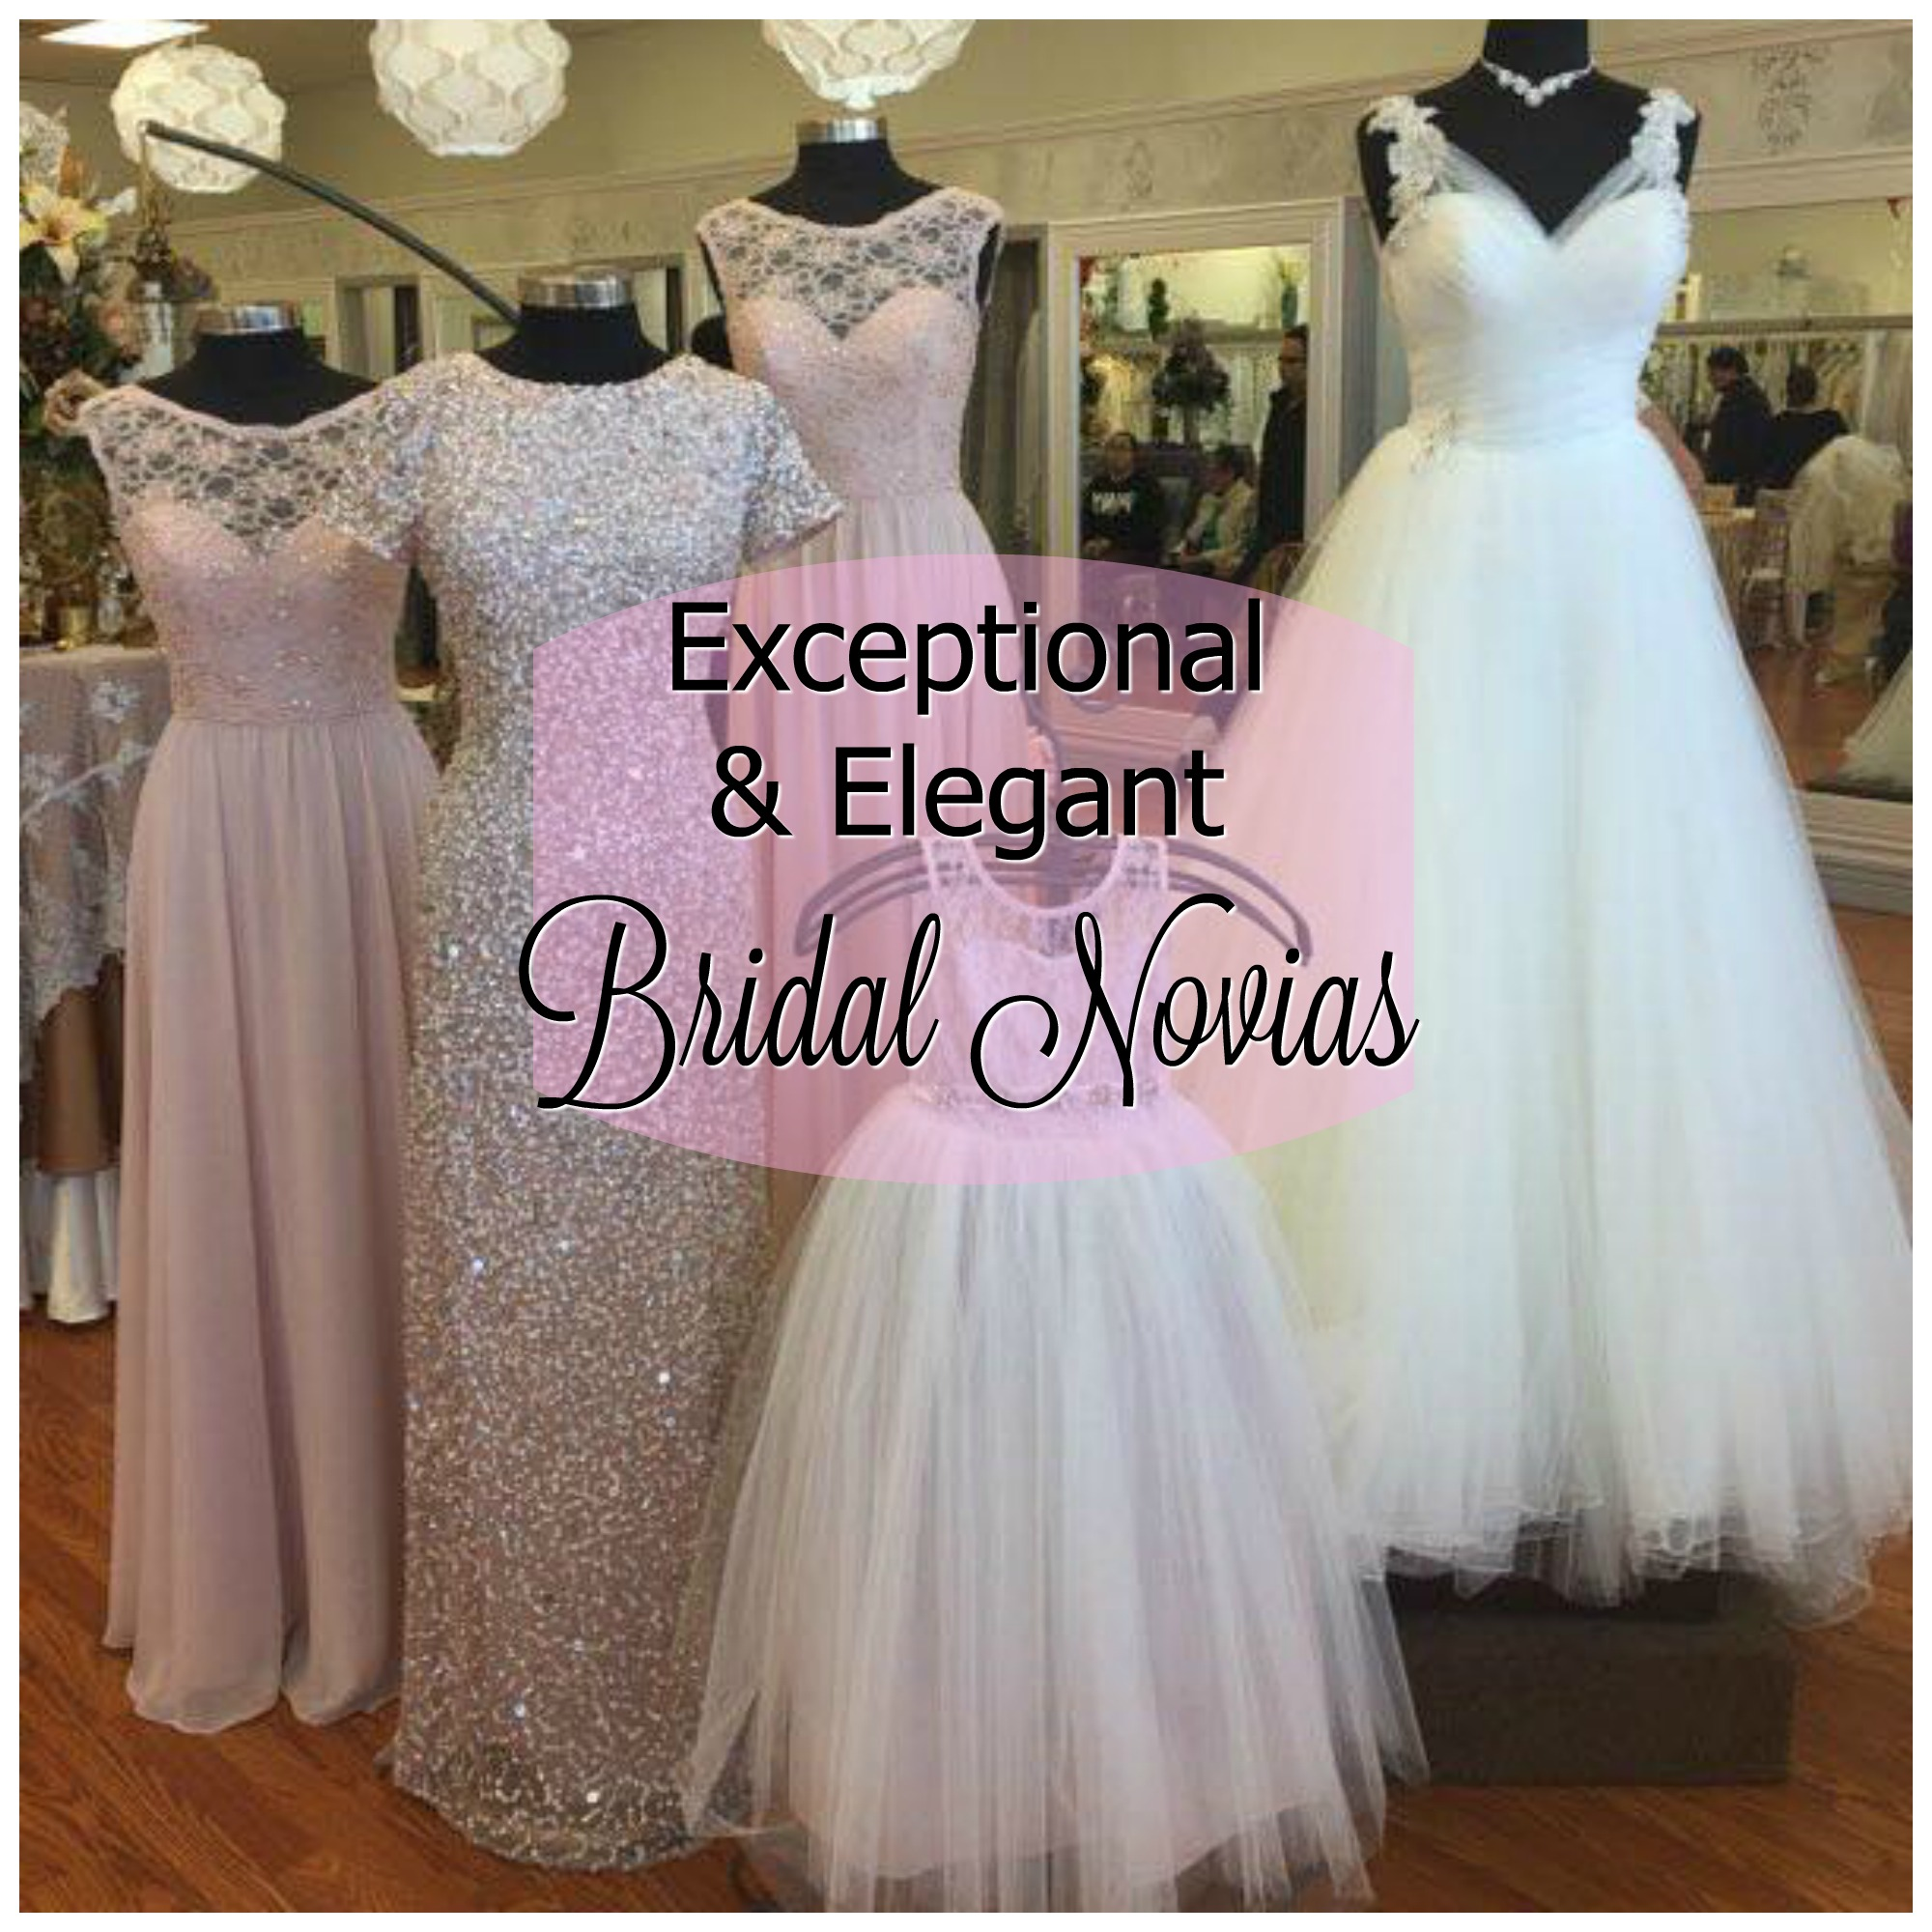 f25f919012 Experience the Exceptional Service and Elegant Options at Bridal Novias in El  Paso